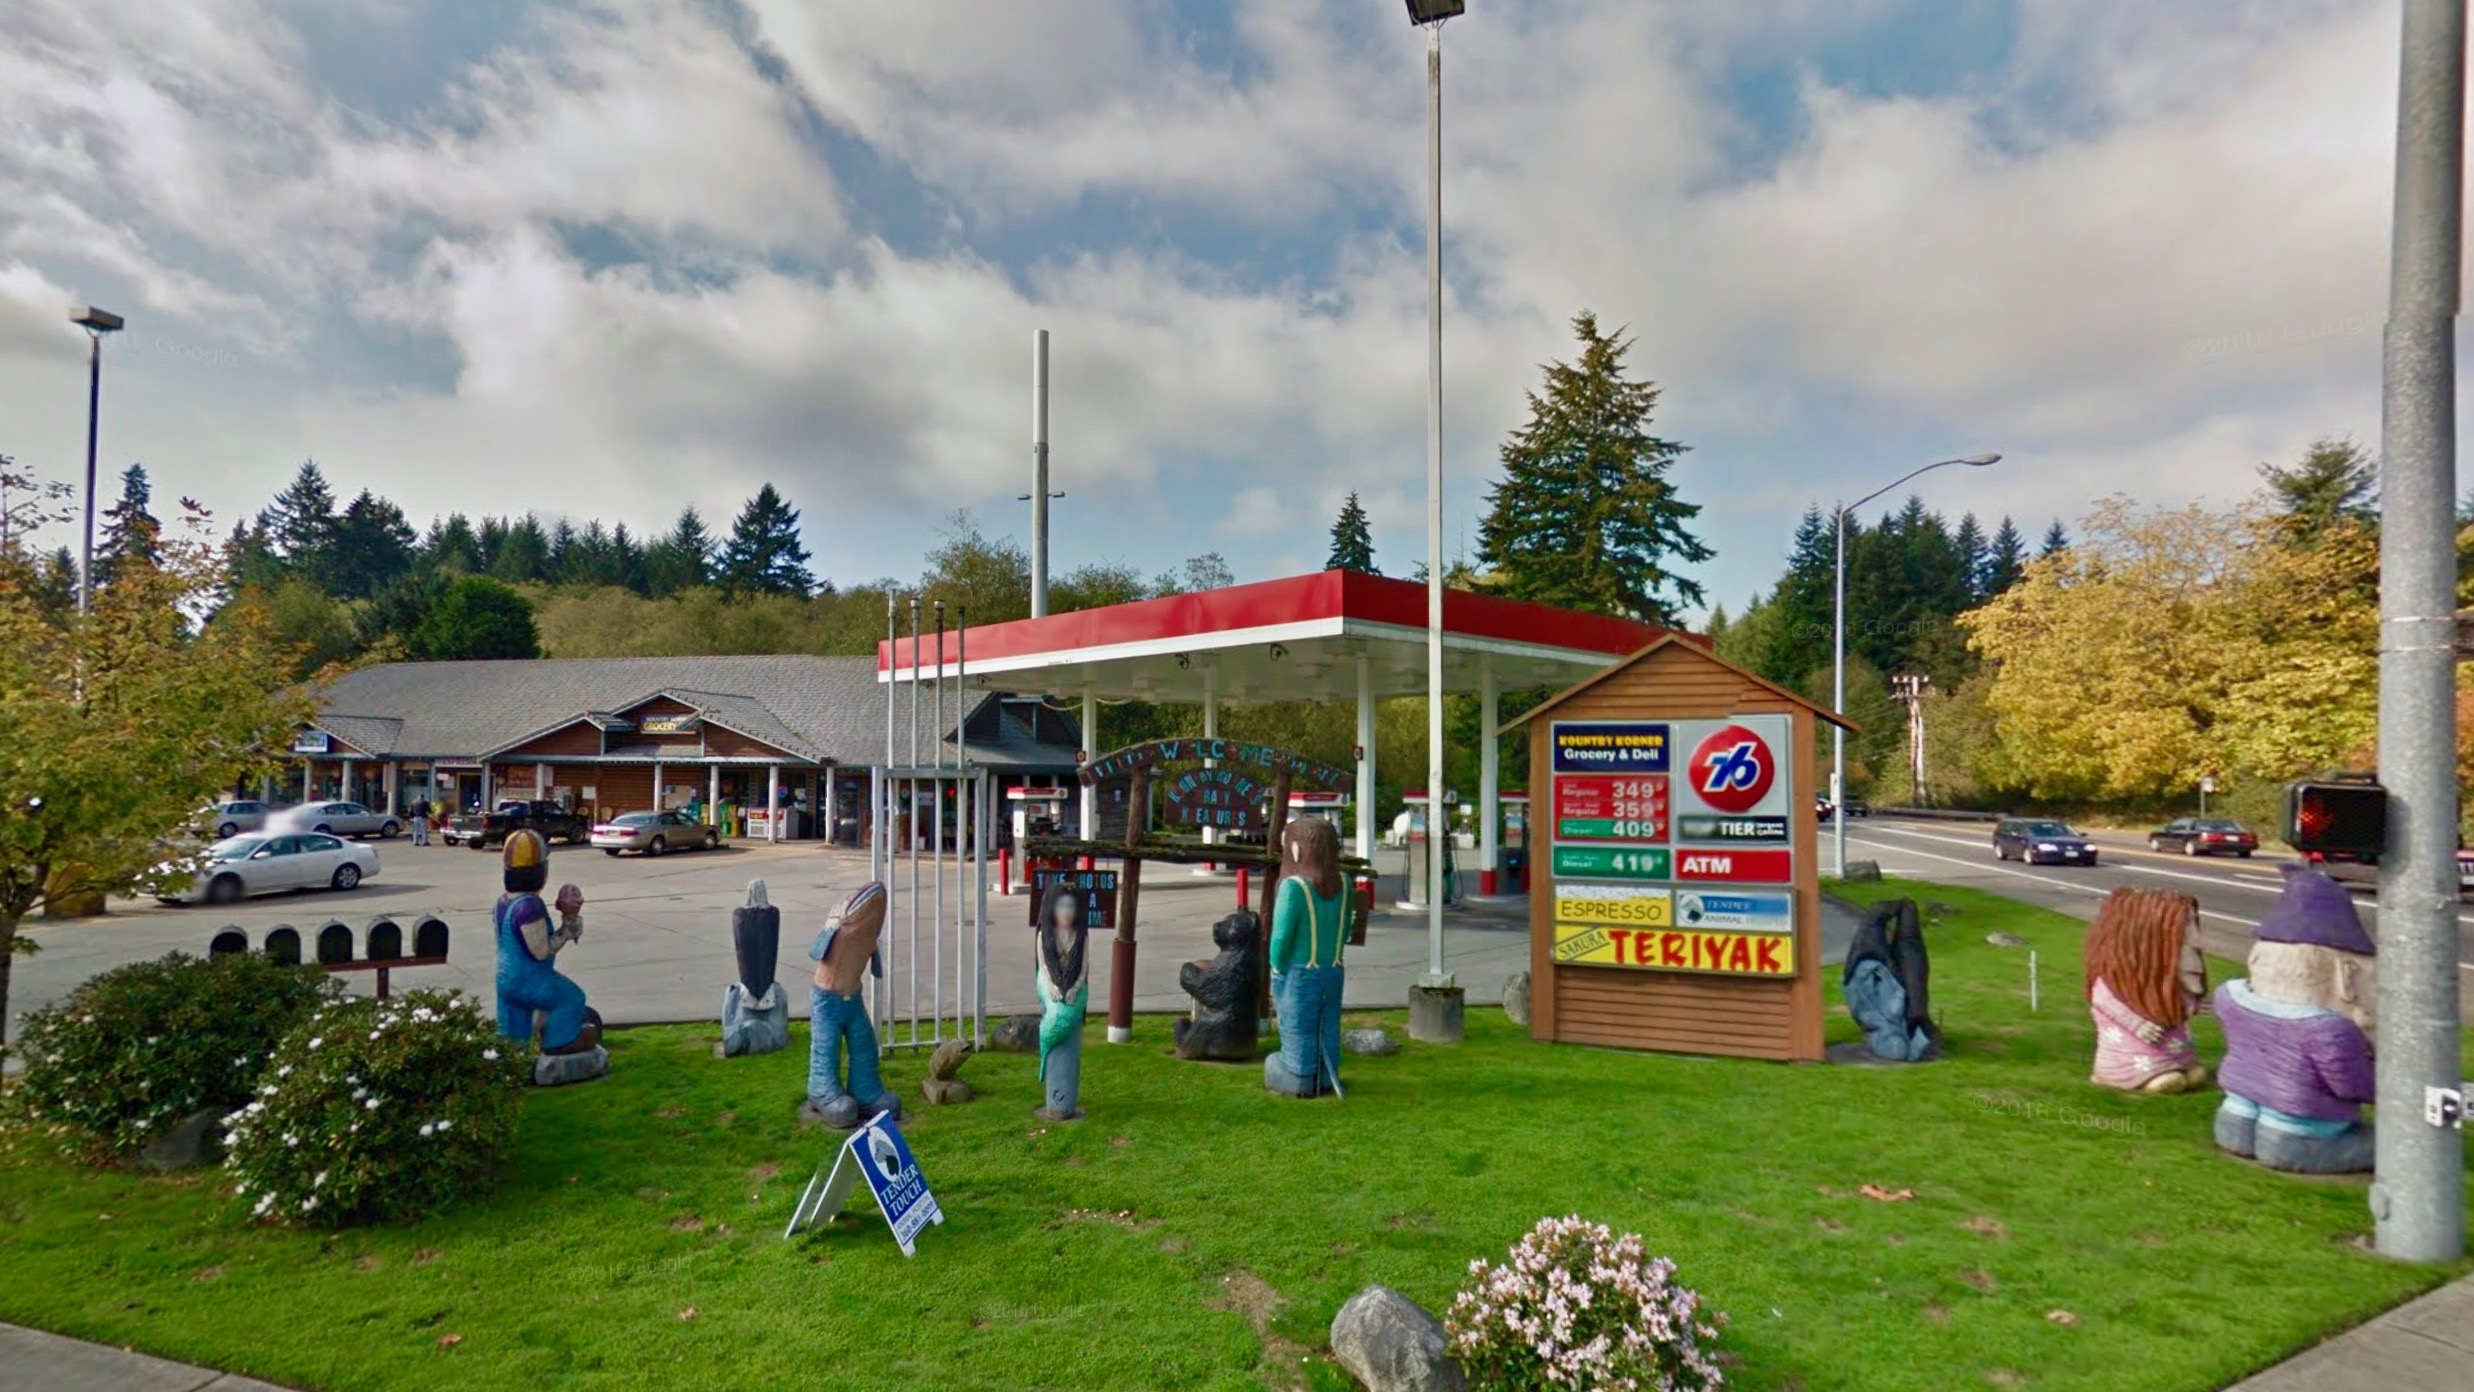 Port Gamble S'Klallam Tribe buys well-known gas station and store for $2.3 million